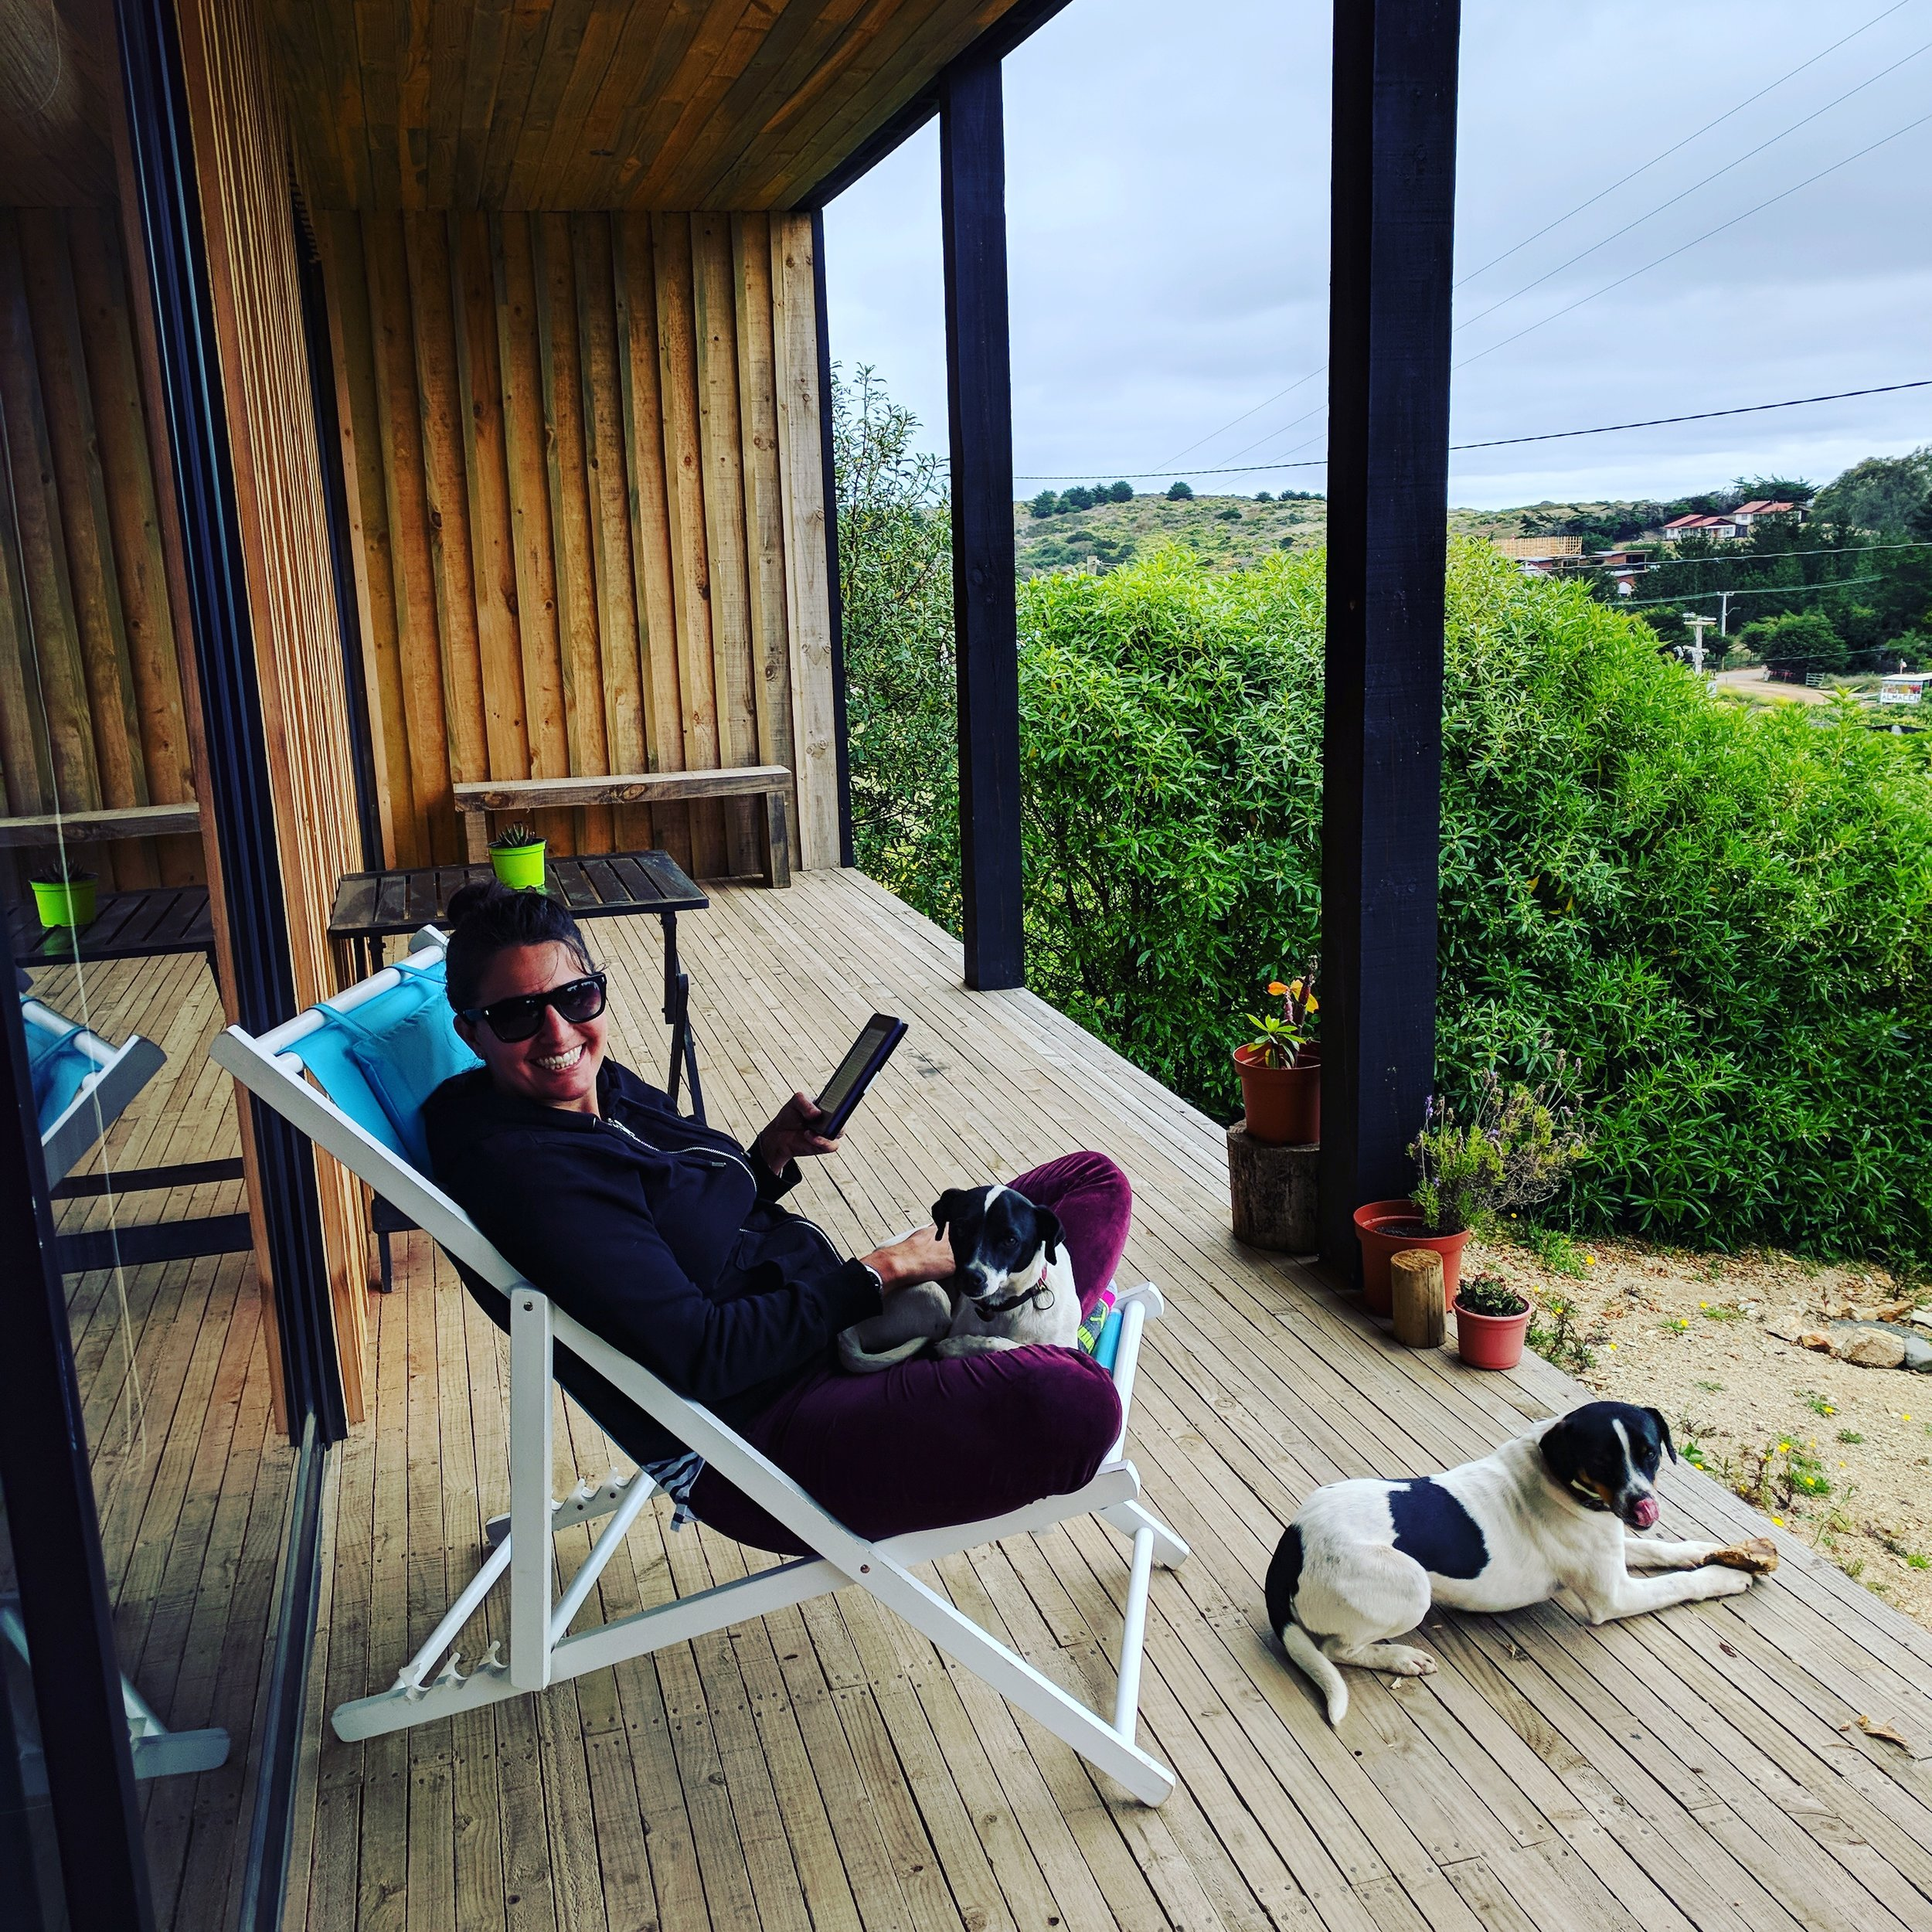 Airbnb puppies - Reineta and Conger